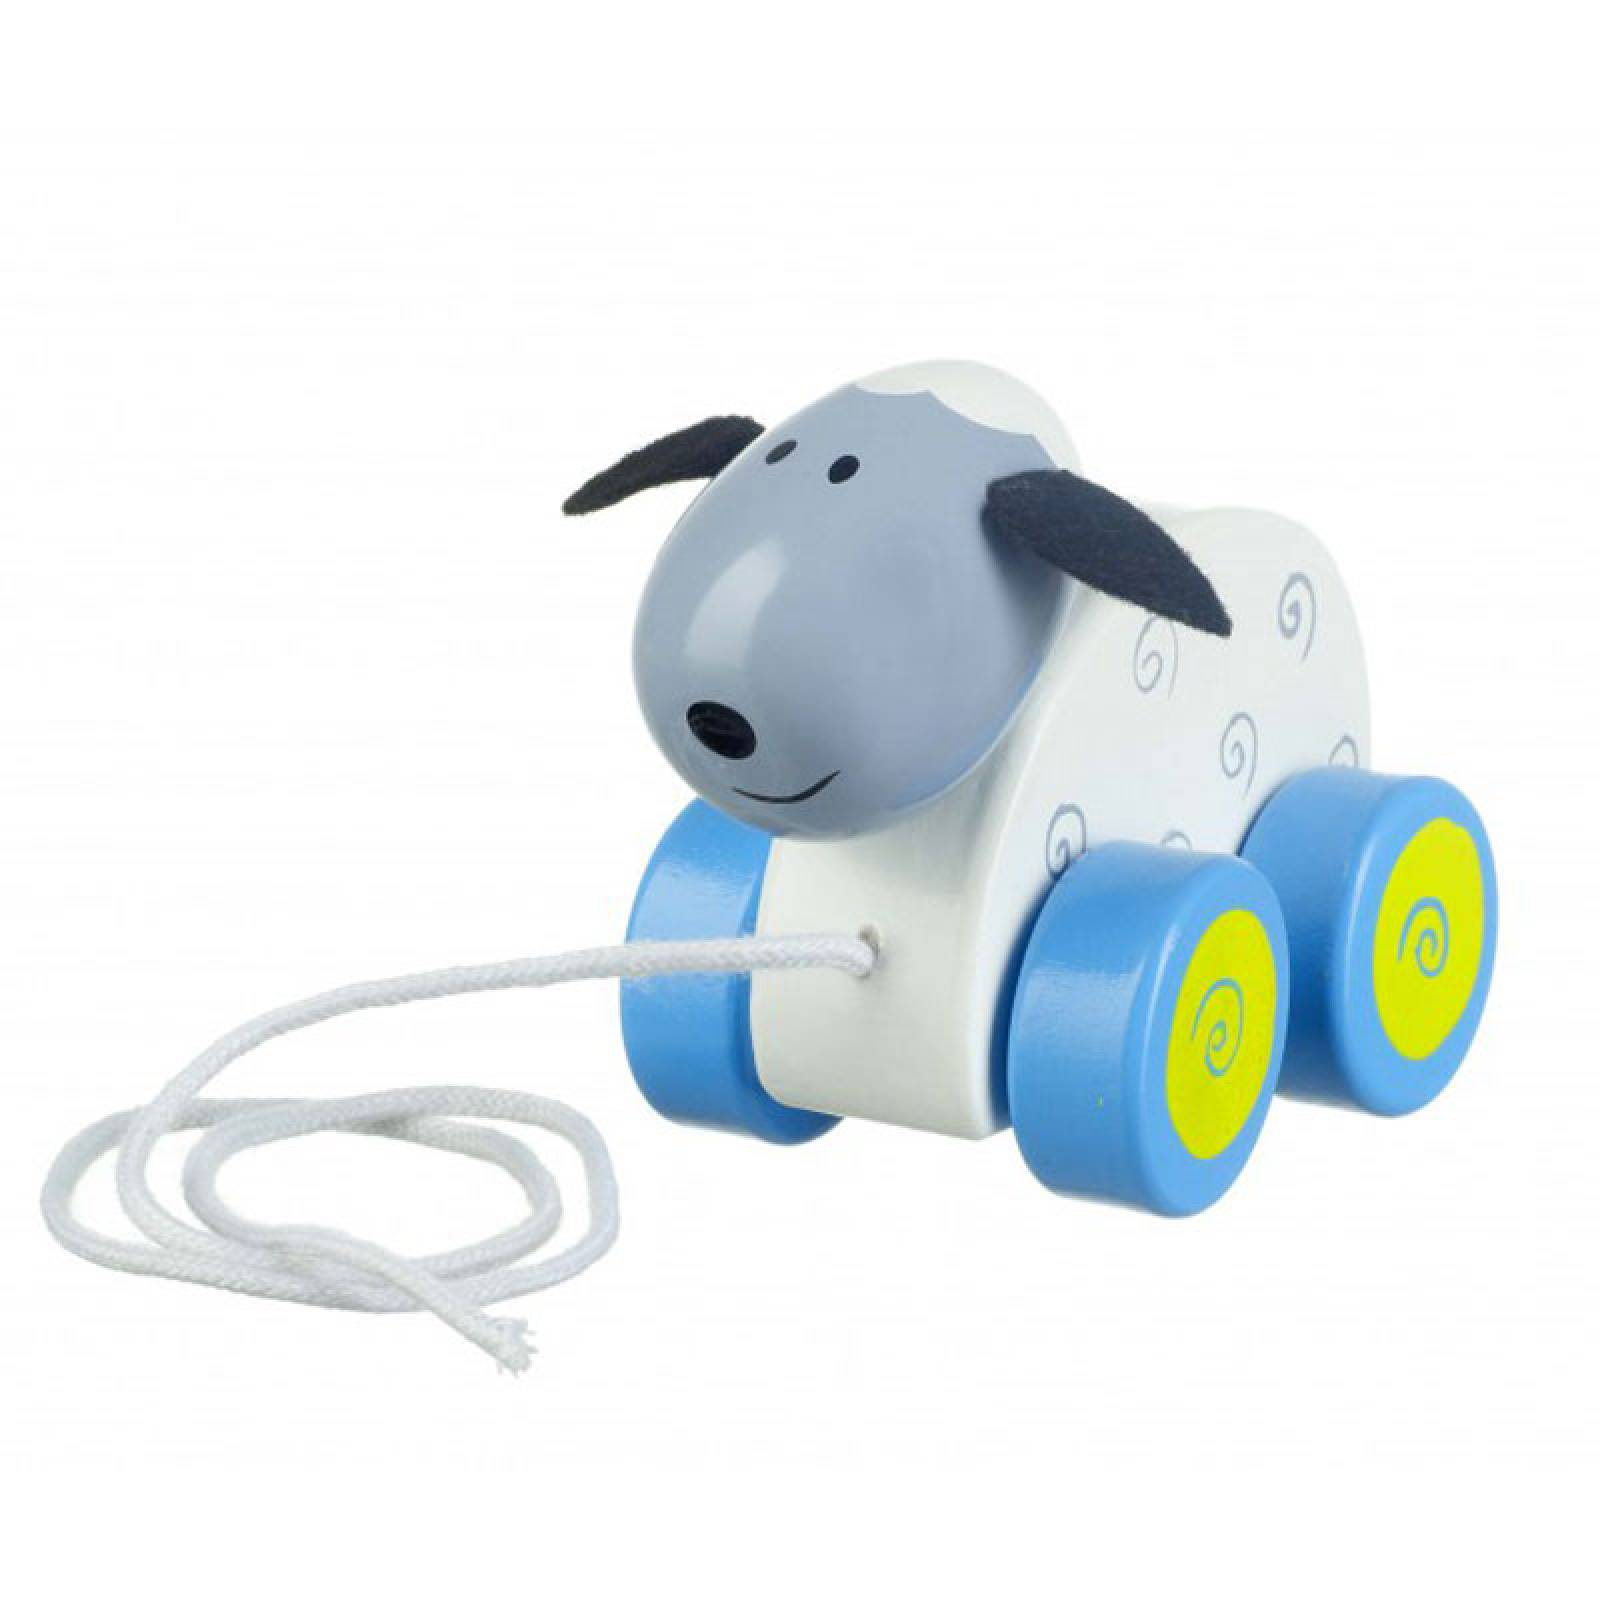 Wooden Sheep Pull Along Toy By Orange Tree 1+